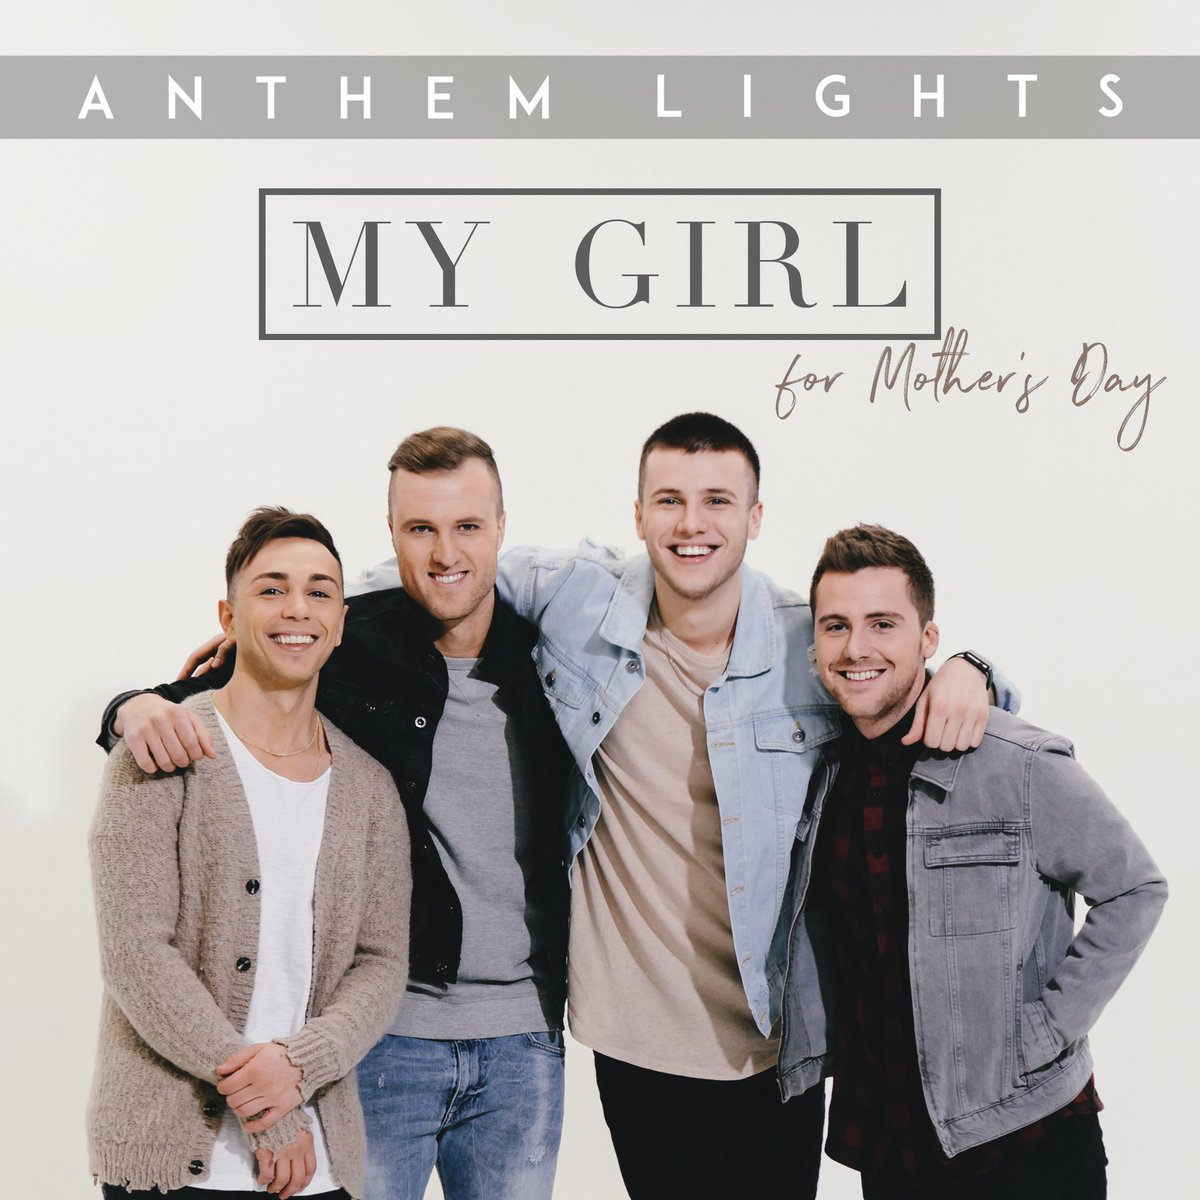 Anthem Lights on Twitter: